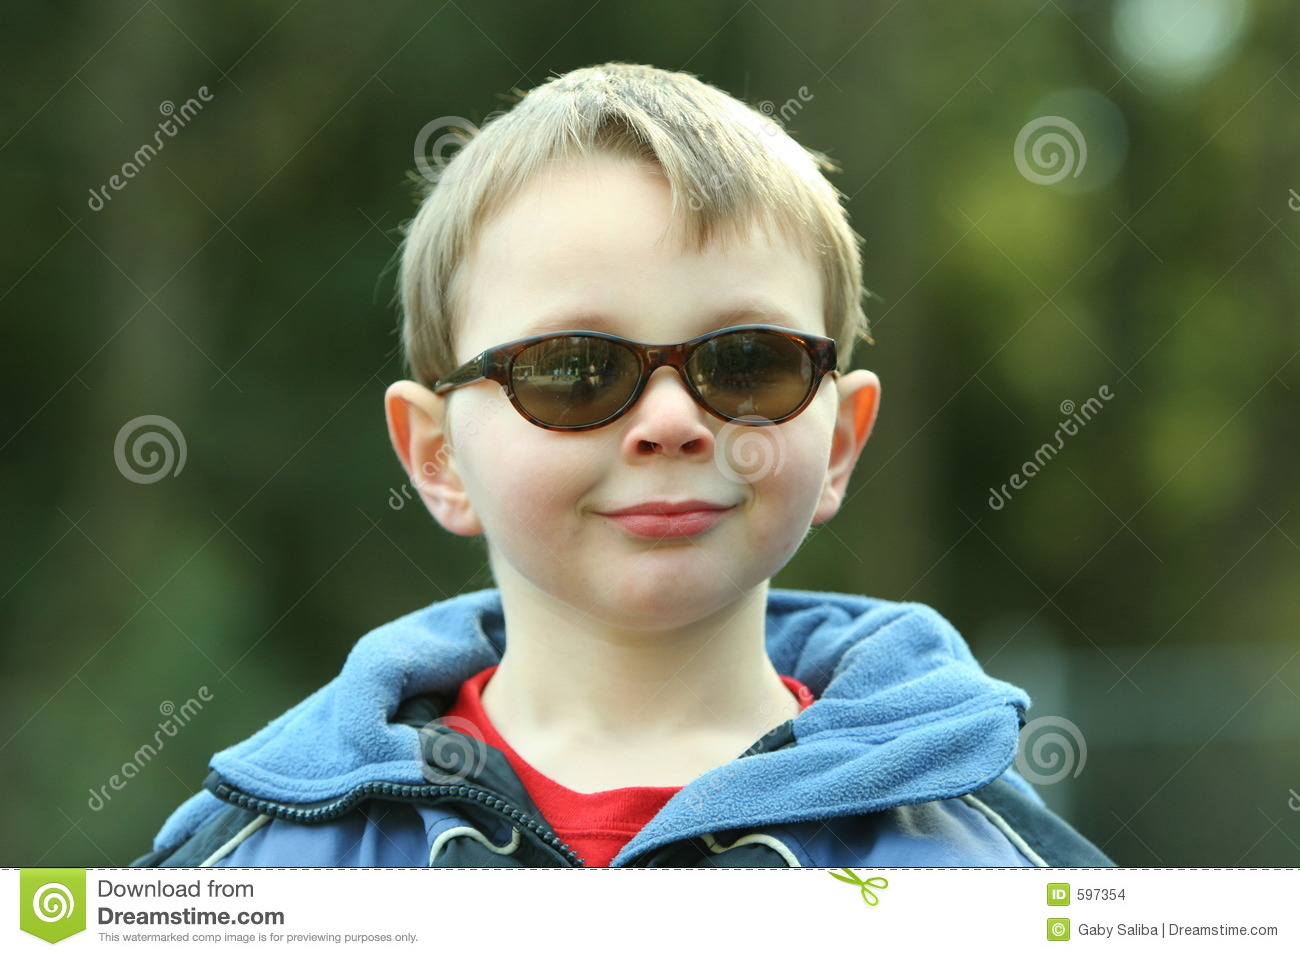 Cool boy with sun glasses